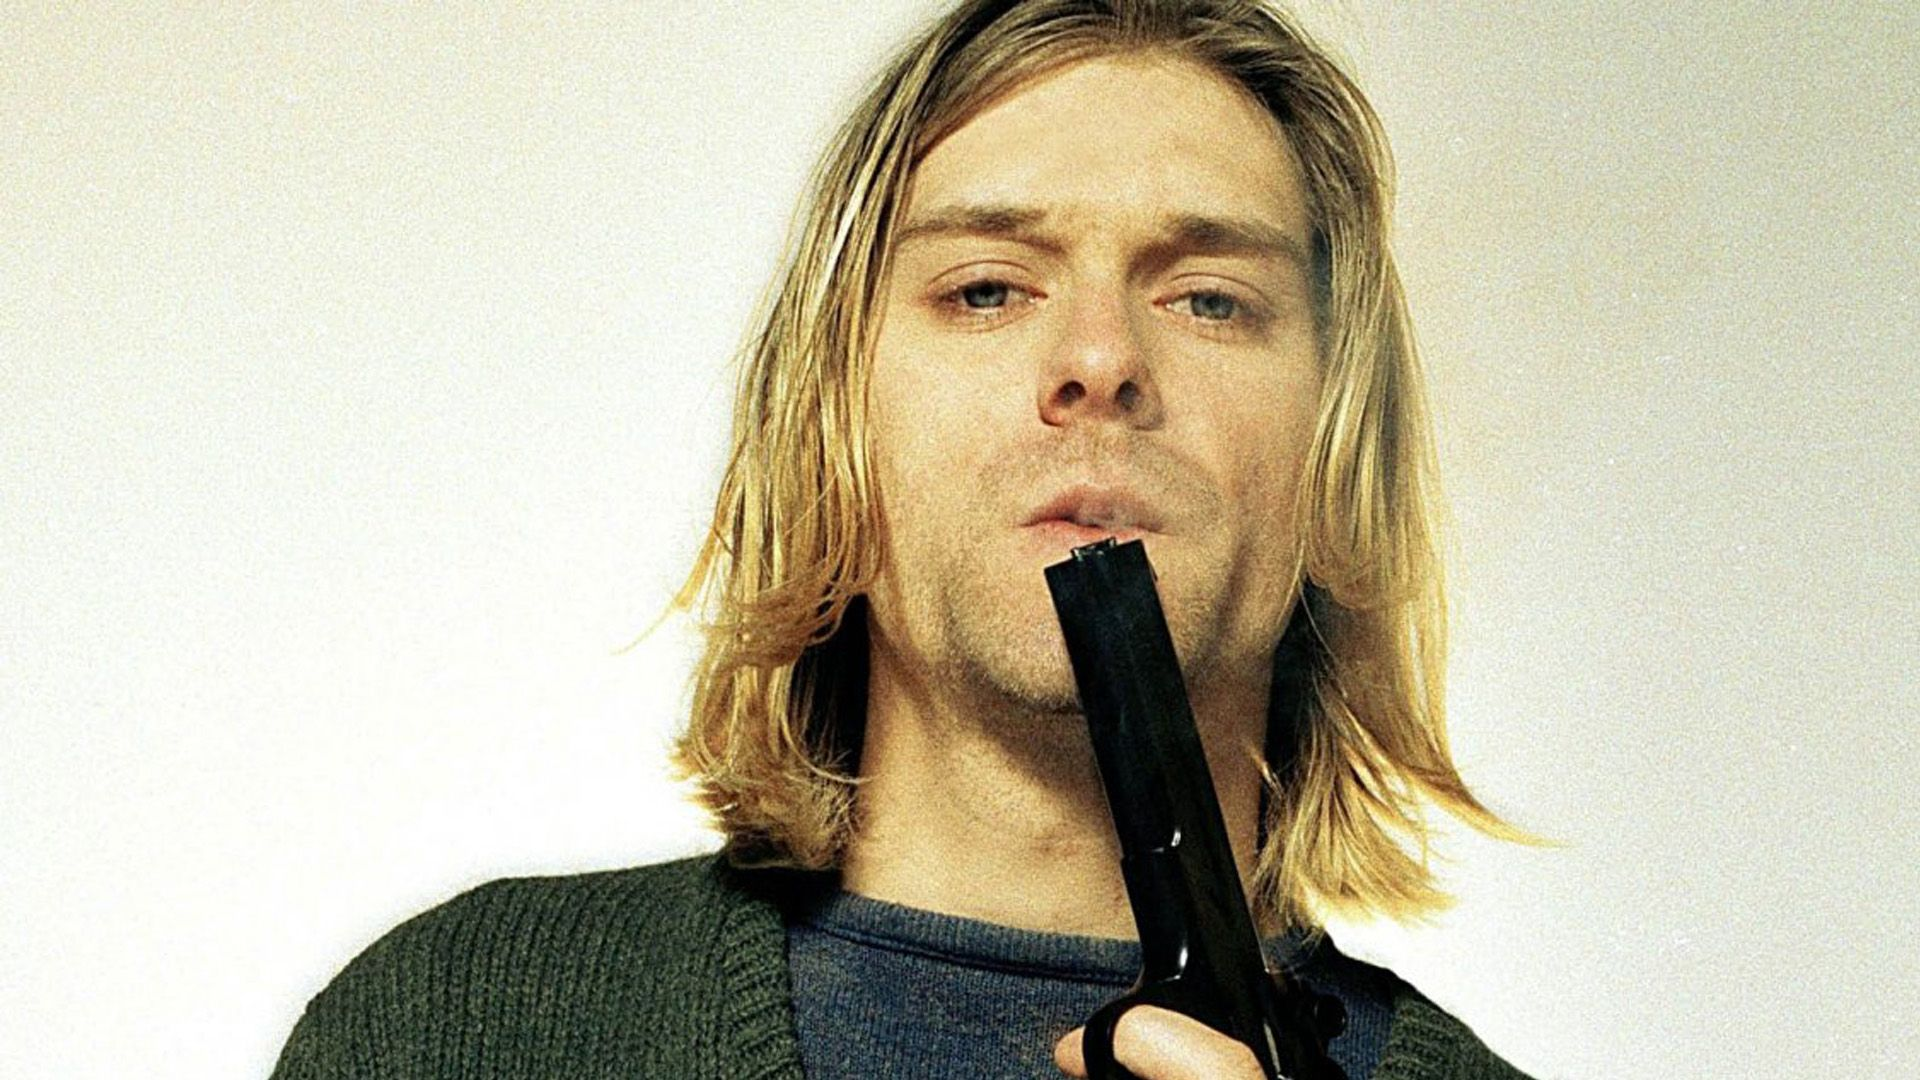 Kurt Cobain Wallpaper HD Background Download Mobile IPhone S 1440x900